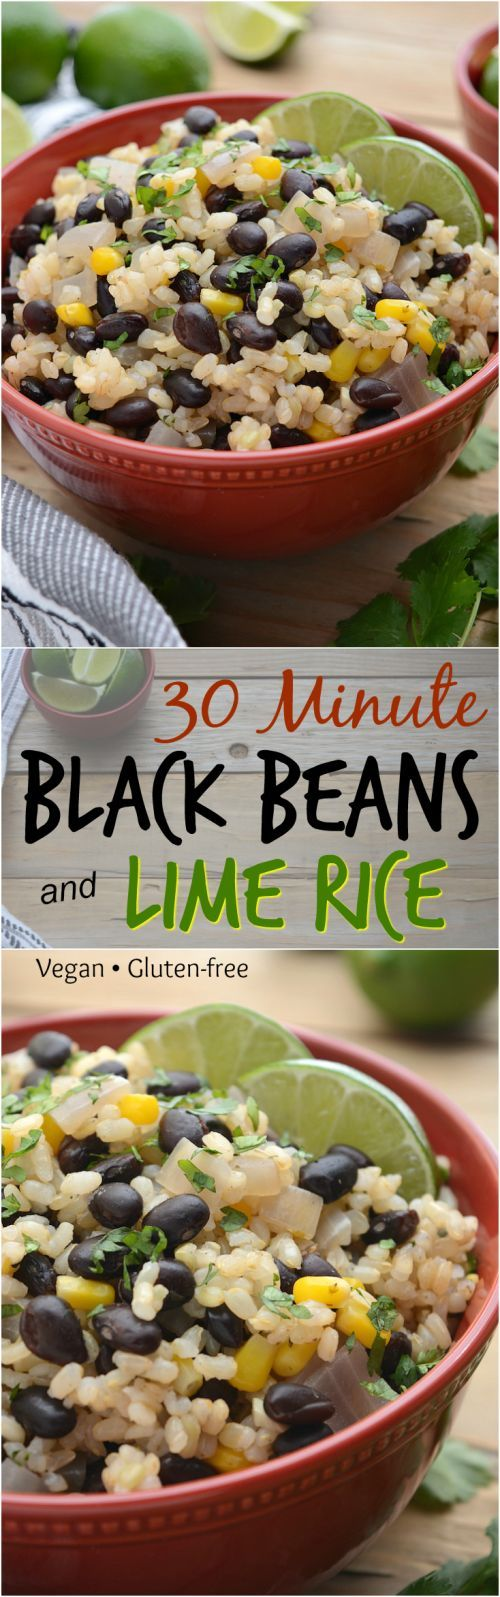 Quick and easy, 30 minute Black Beans and Lime Rice! With a few simple ingredients you've got a great week night dinner, and leftovers make for an ideal lunch! The beans are perfectly spiced with cumin, paprika and optional cayenne. The lime rice adds an authentic 'gotta have it taste', and a handful of cilantro completes the bowl!  #vegan #glutenfree #blackbeansandrice #vegandinner